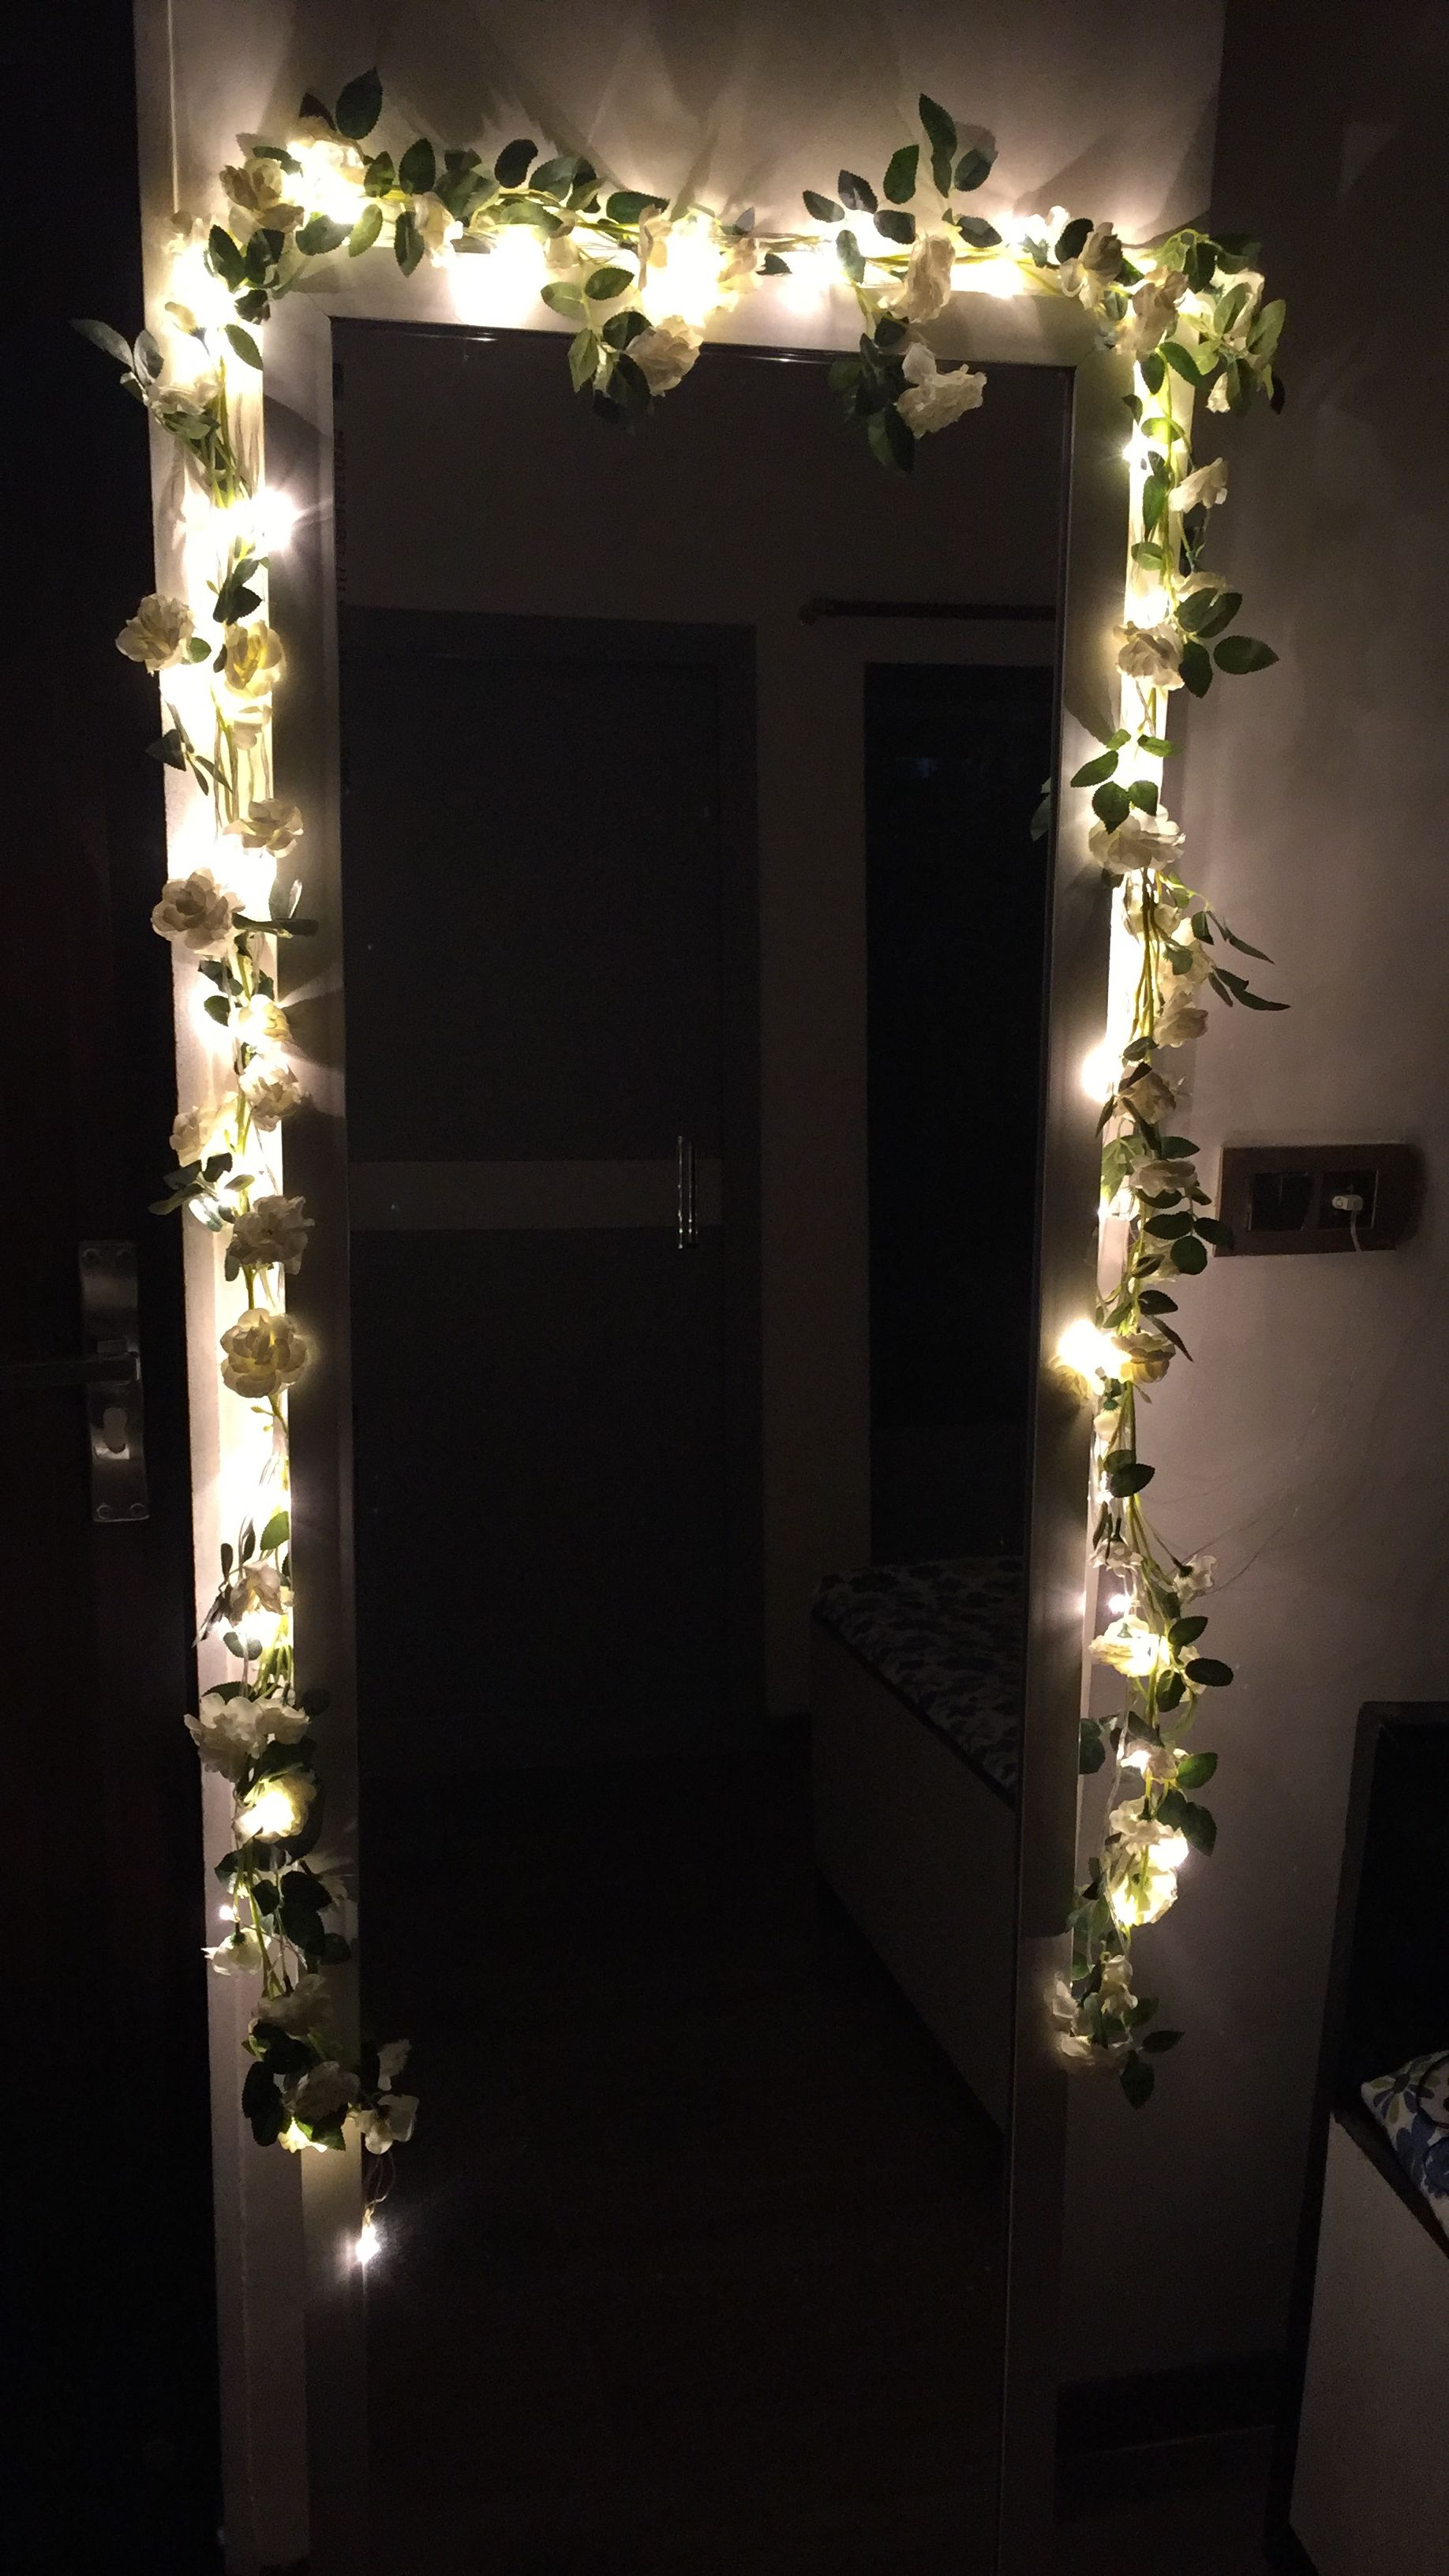 Mirror Decor At Home Using Fairy Lights White Flower Vails Aesthetic Room Decor Mirror Decor Aesthetic Rooms